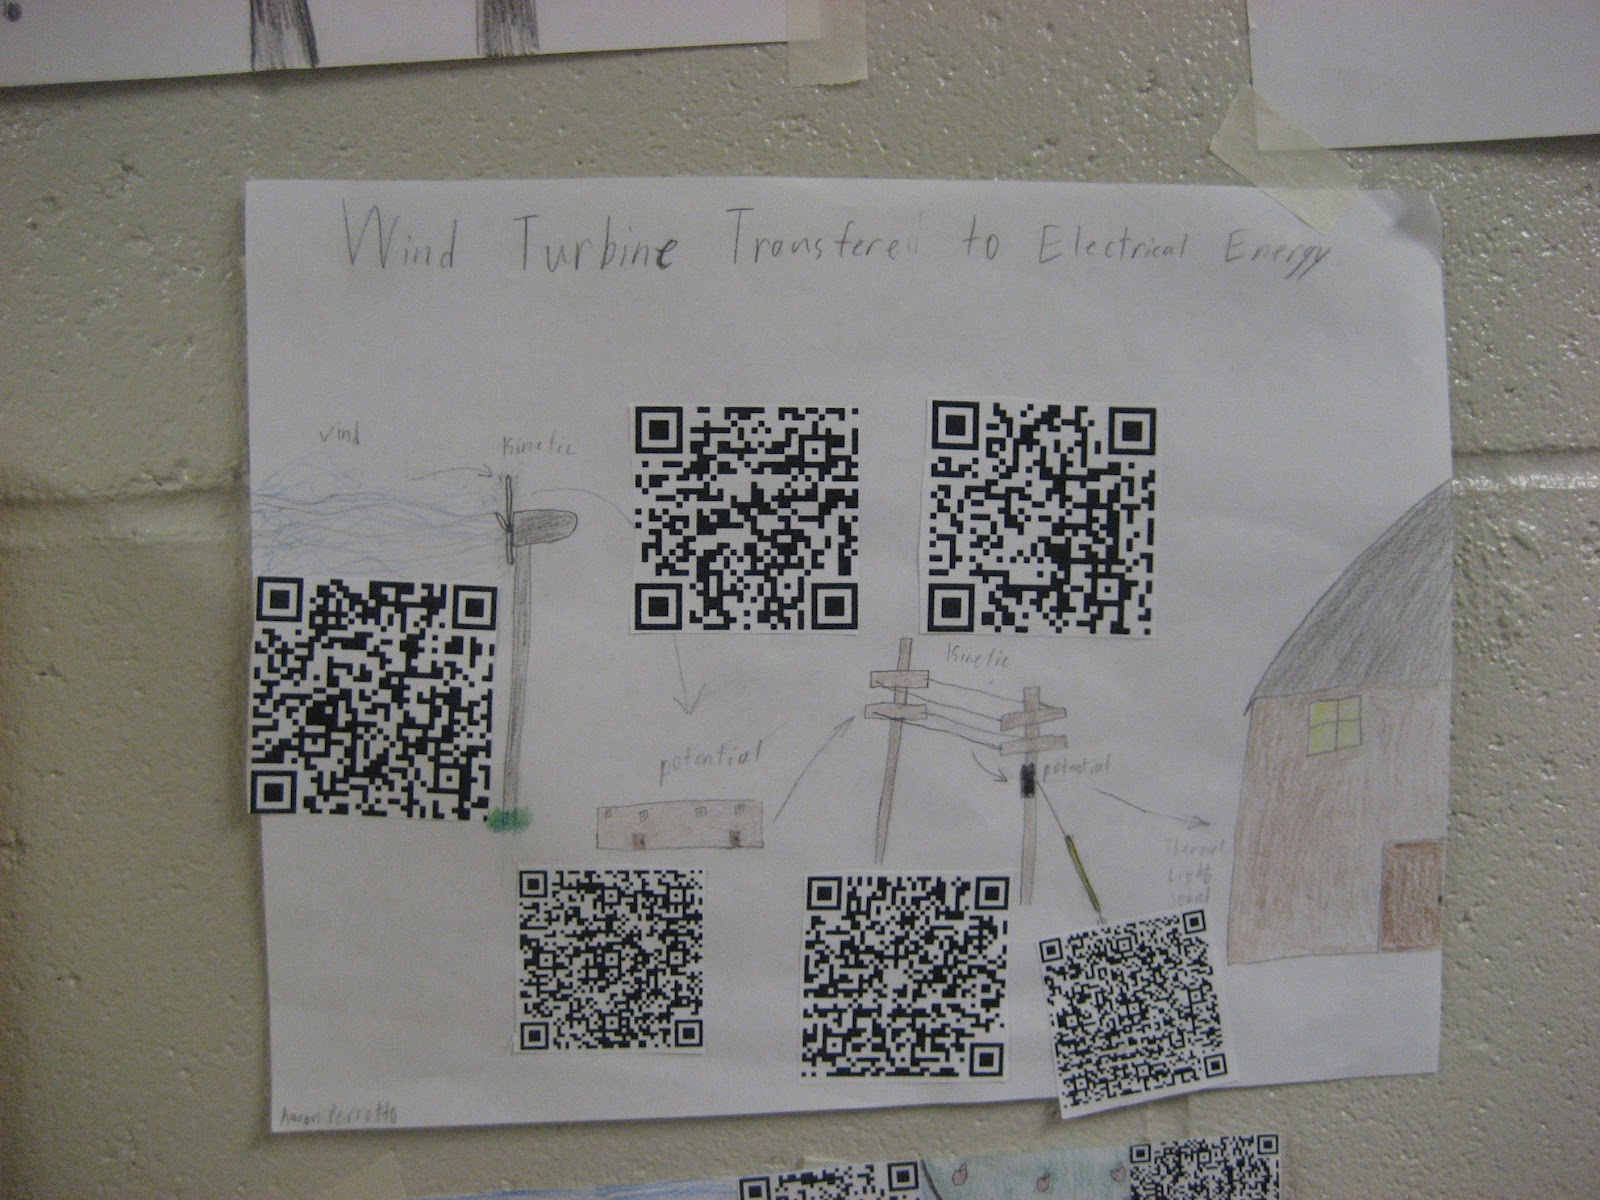 Ms Milleson S 7th Grade Blog Energy Poster And Qr Codes